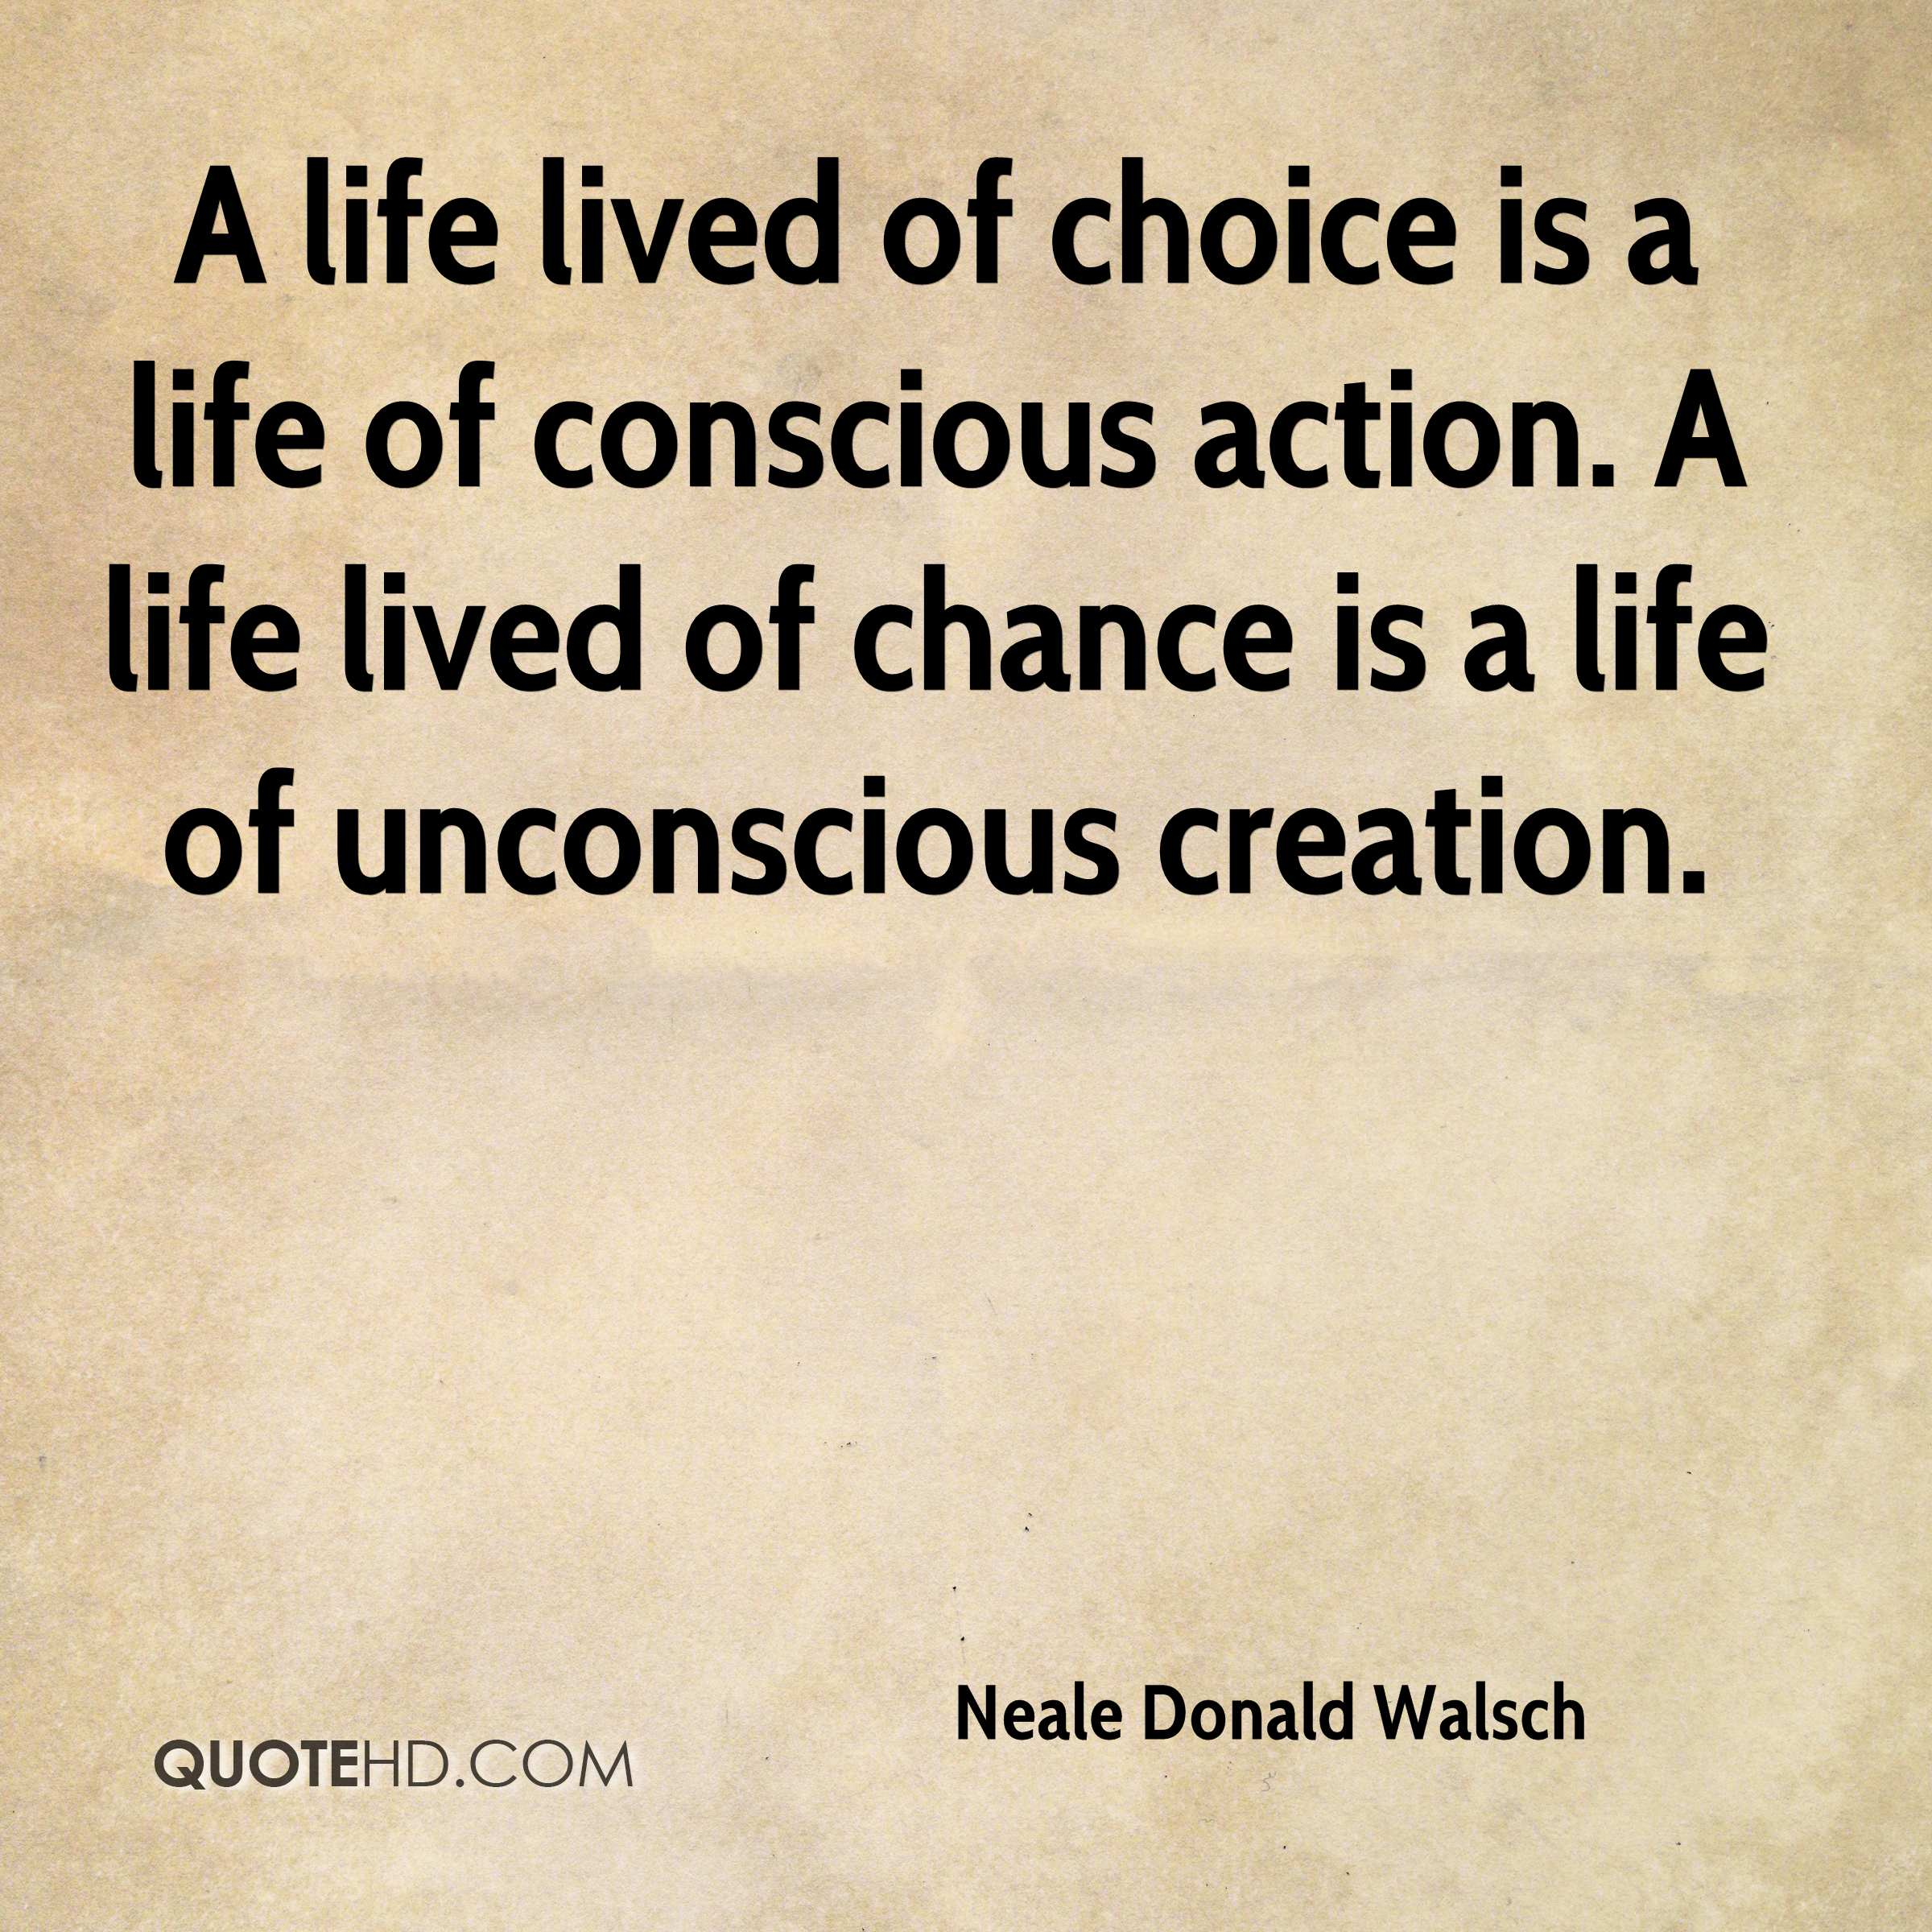 A life lived of choice is a life of conscious action. A life lived of chance is a life of unconscious creation.